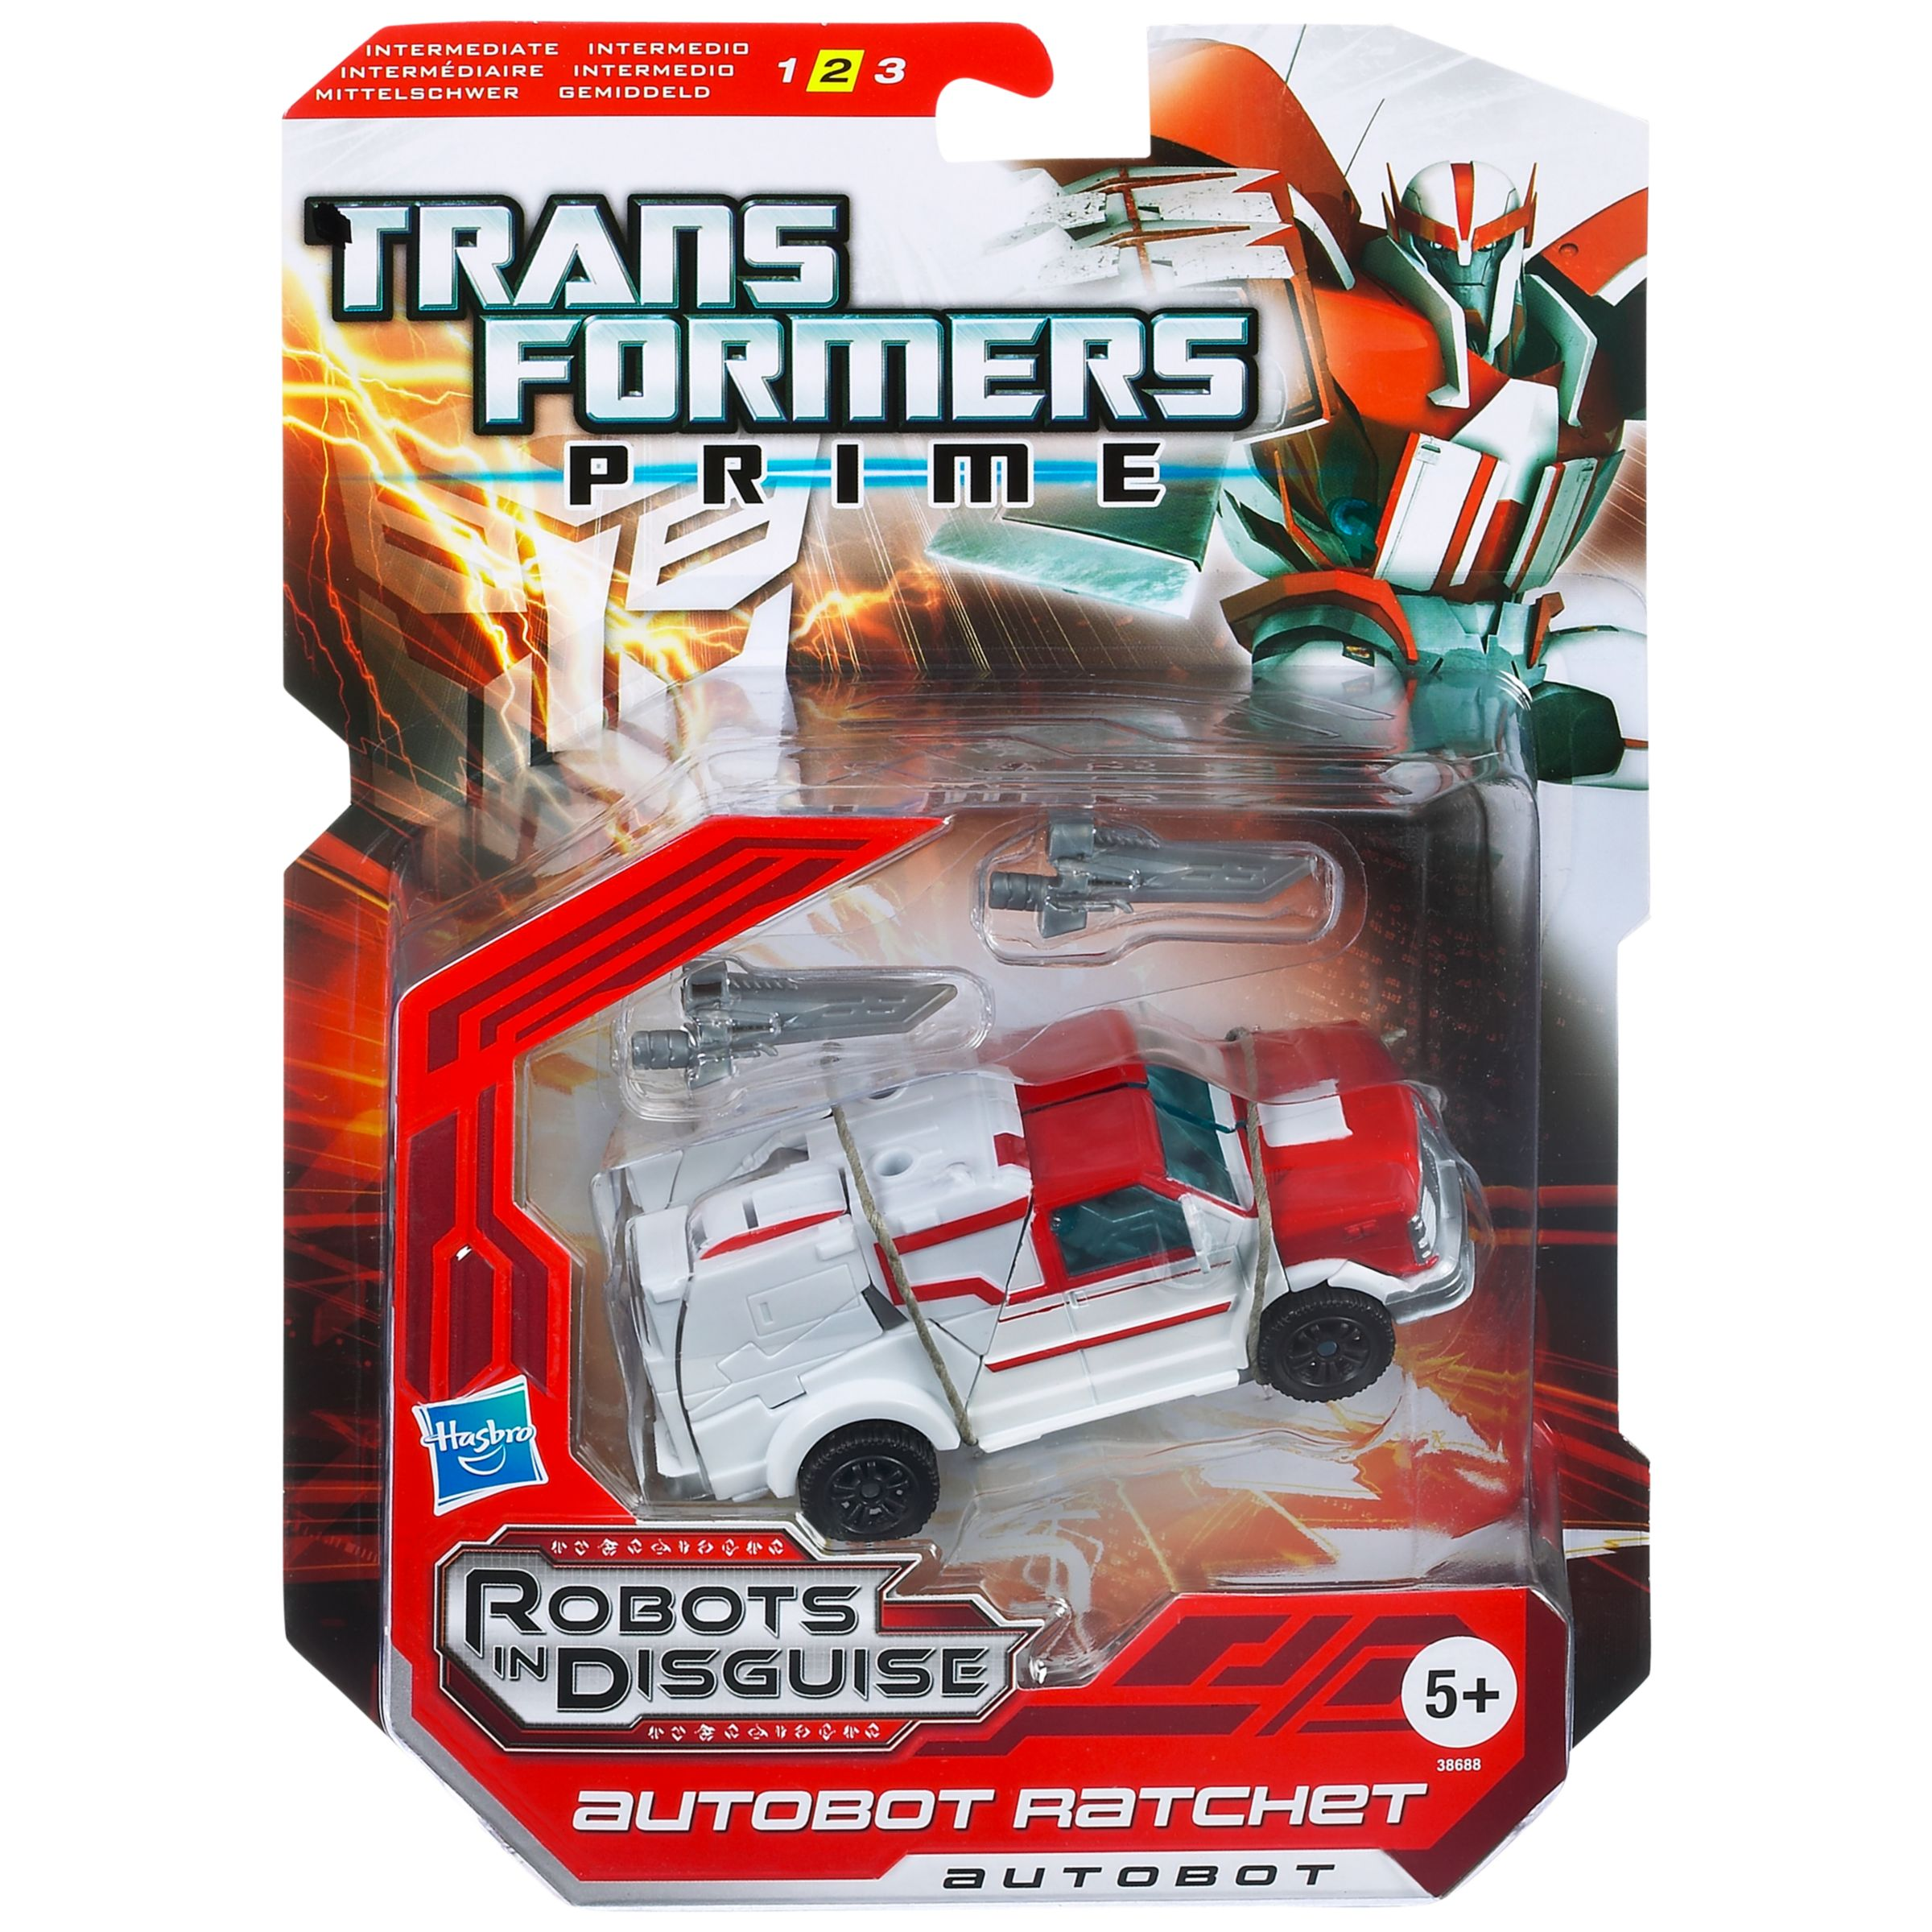 Transformers Prime Robots in Disguise, Intermediate, Assorted